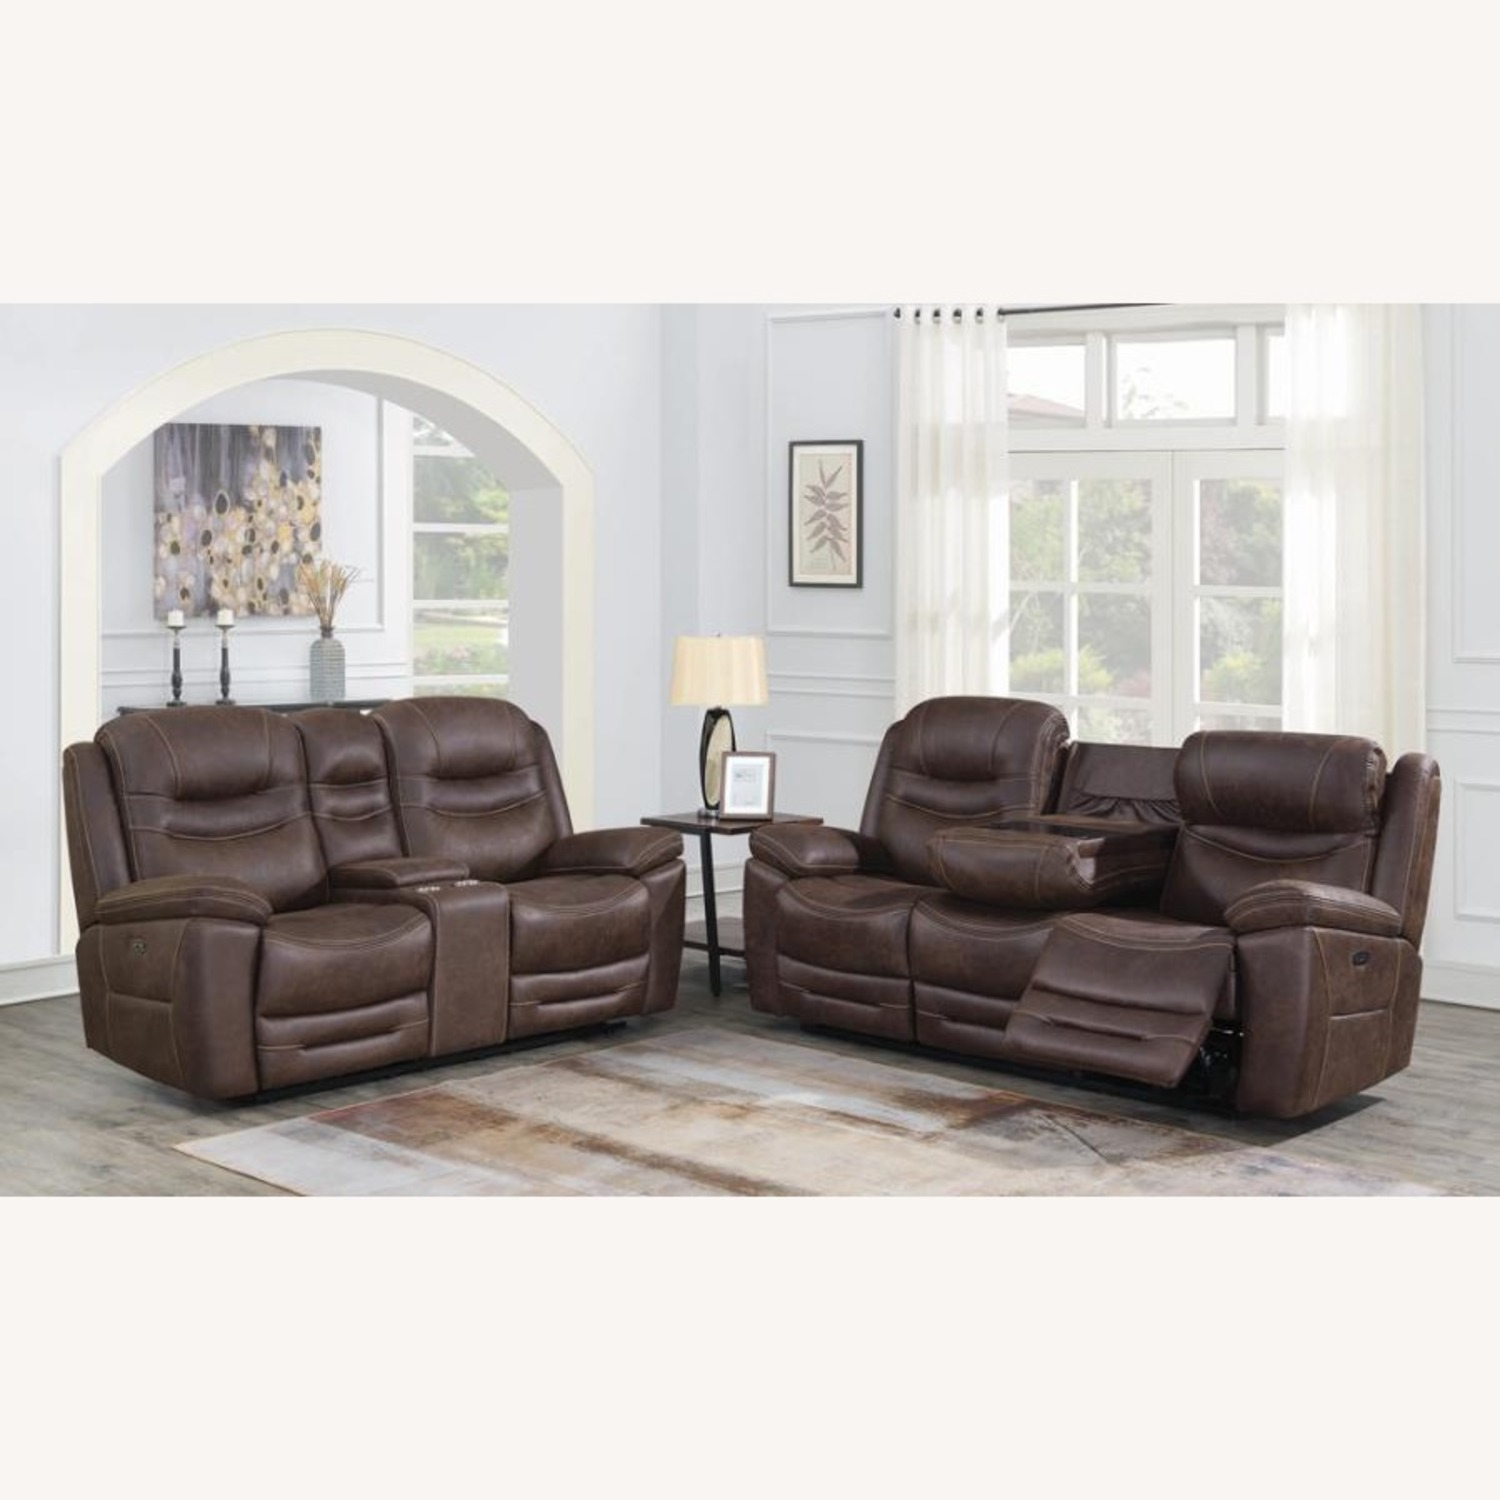 Power Glider Recliner In Chocolate Faux Upholstery - image-9